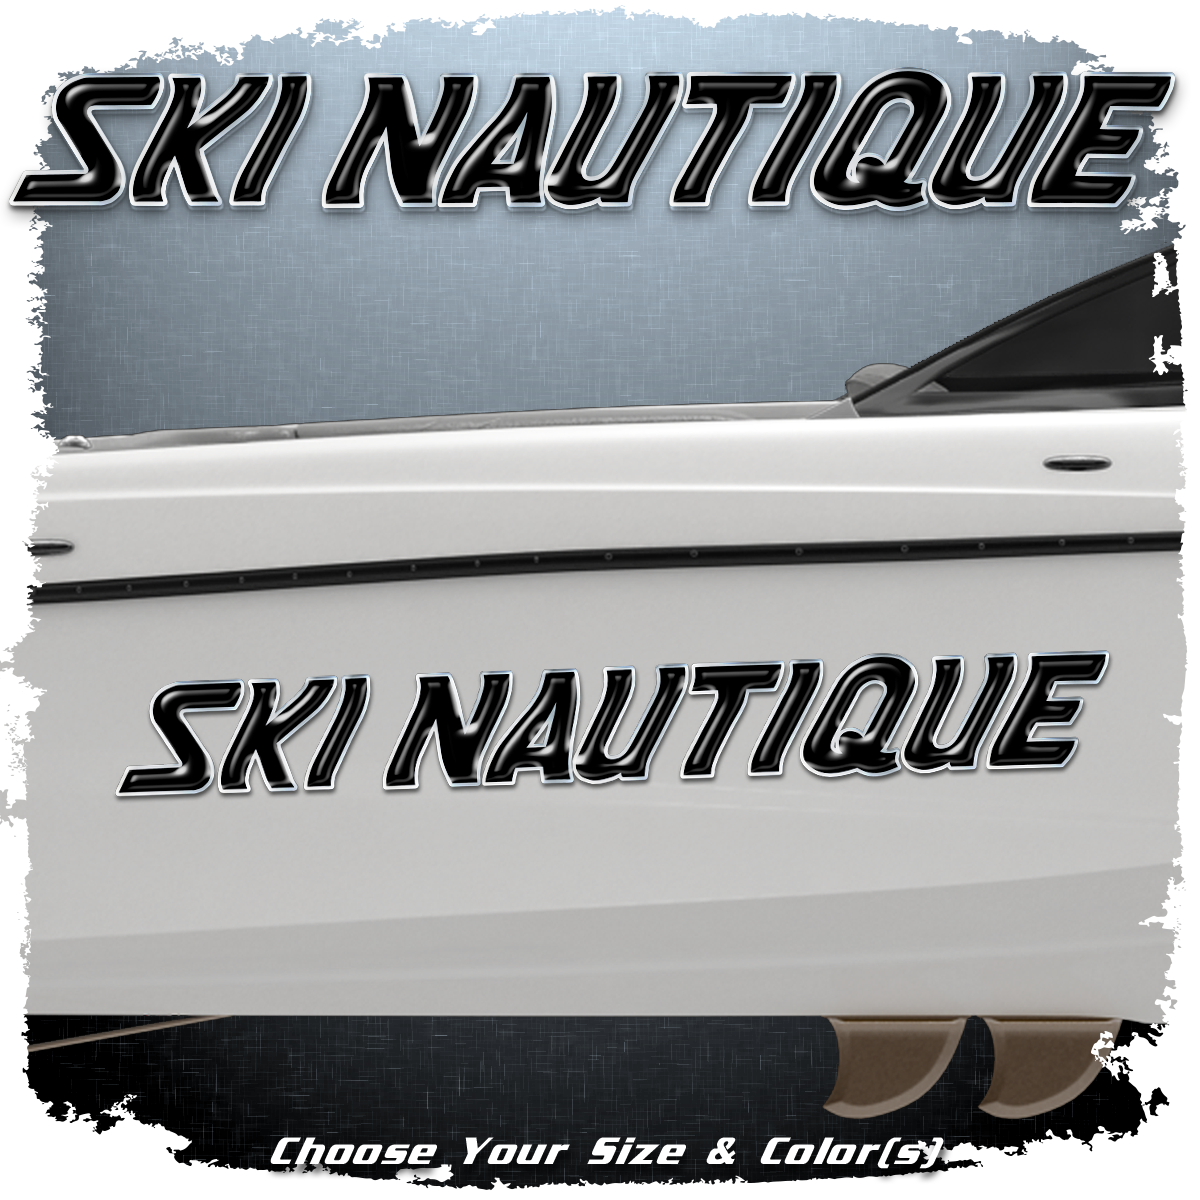 Domed Ski Nautique Decal, Choose Your Size & Colors (1 included)